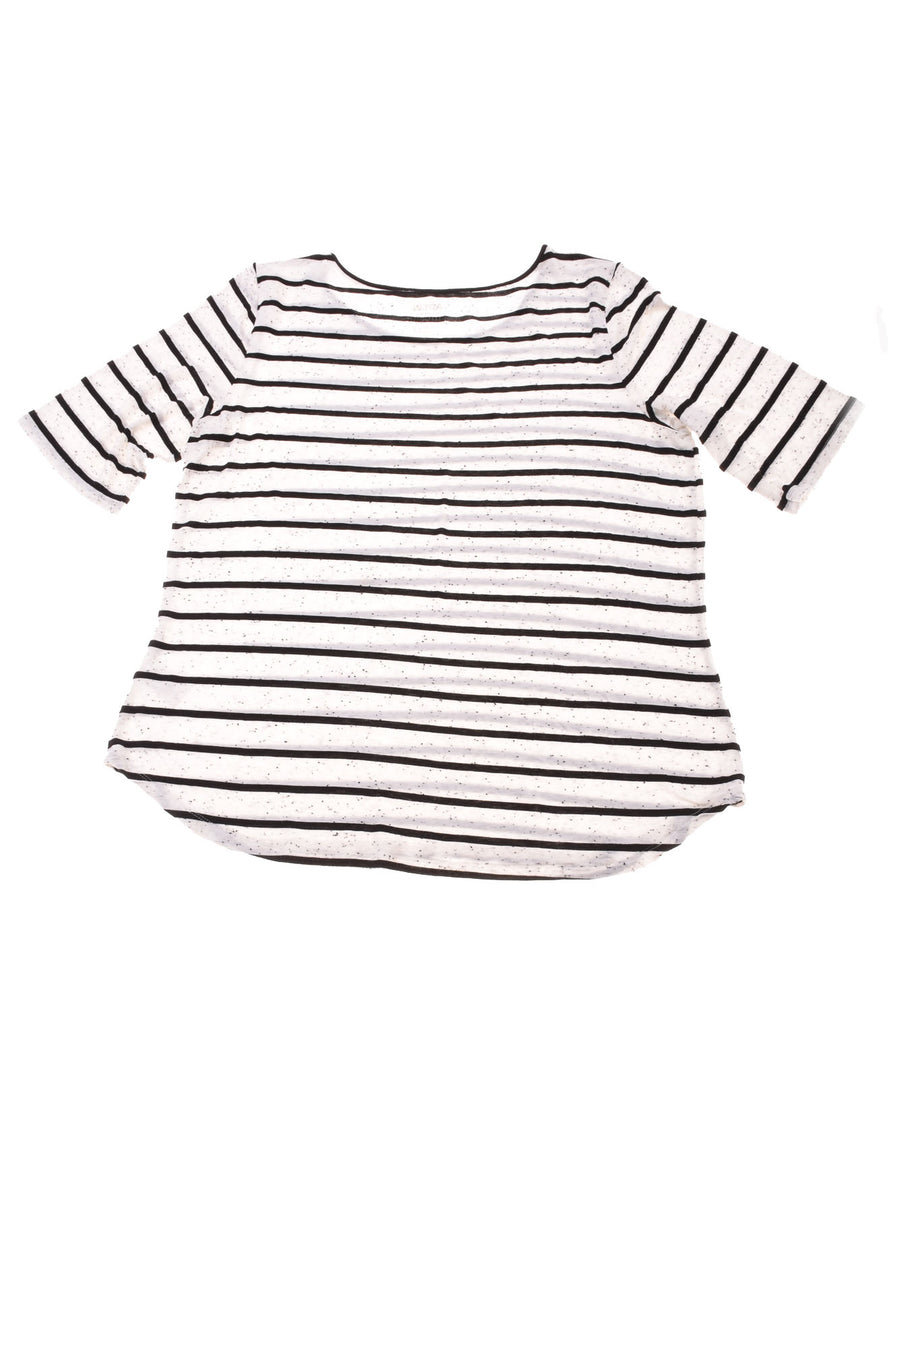 USED Apt. 9 Women's Top X-Large Black & White